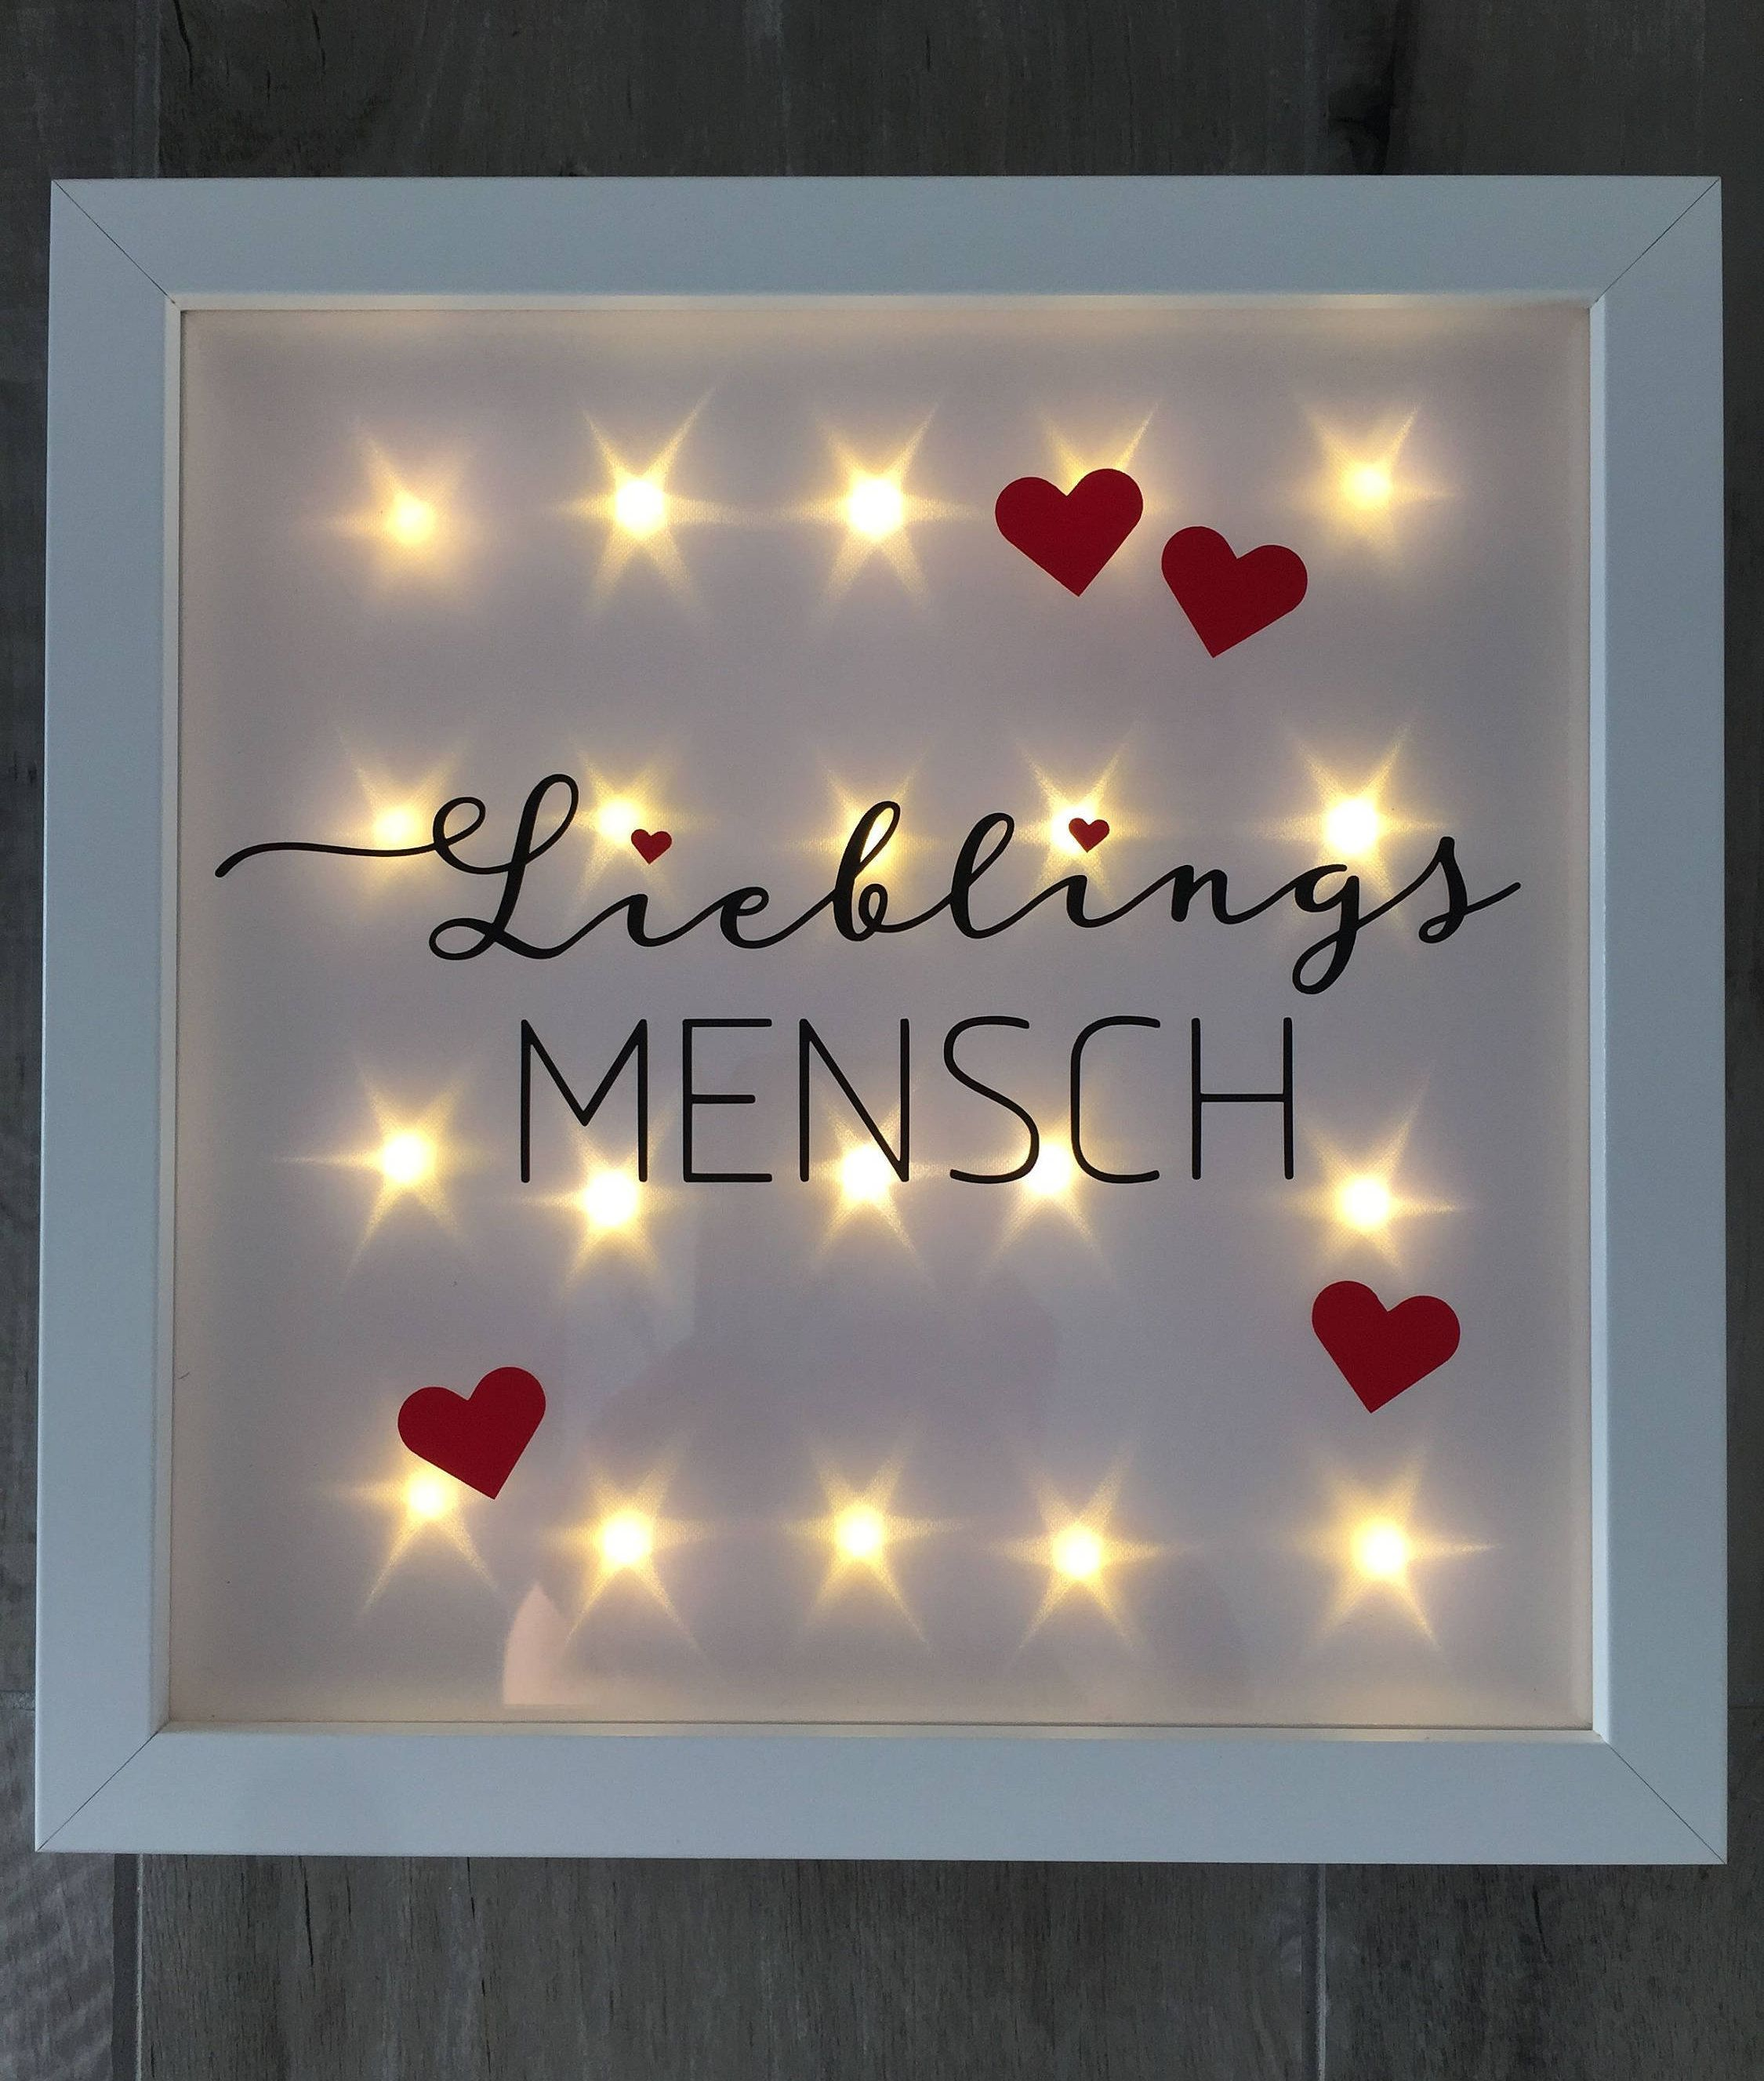 Gift for Dear people/friends, illuminated picture frame \